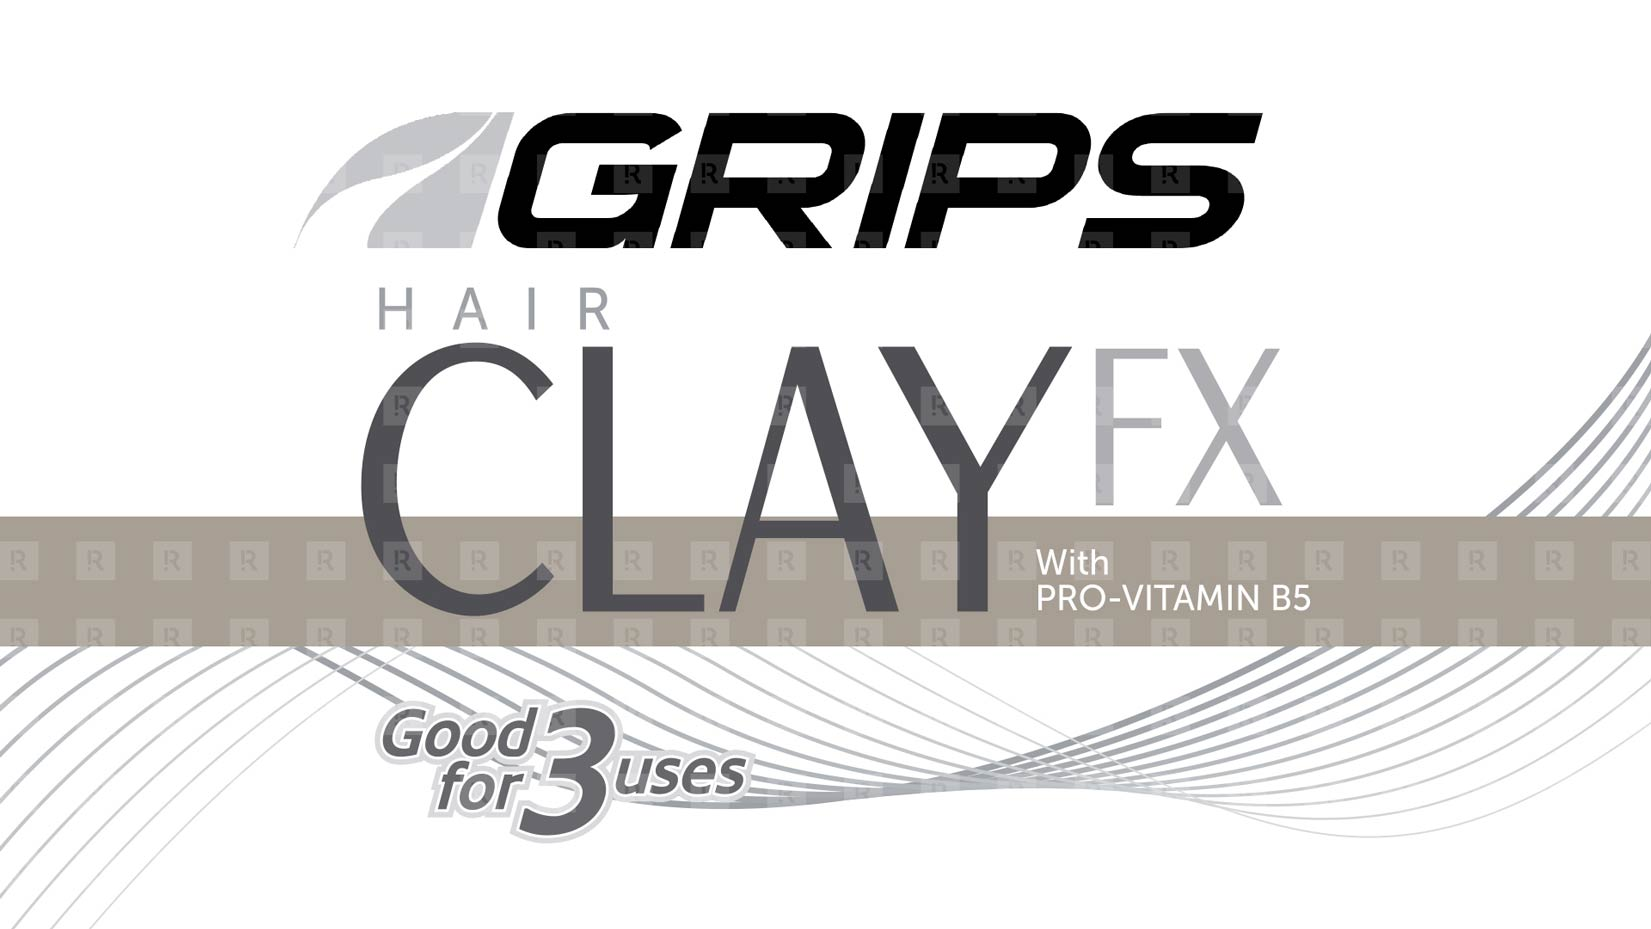 Grips Hair Clay FX  brand design